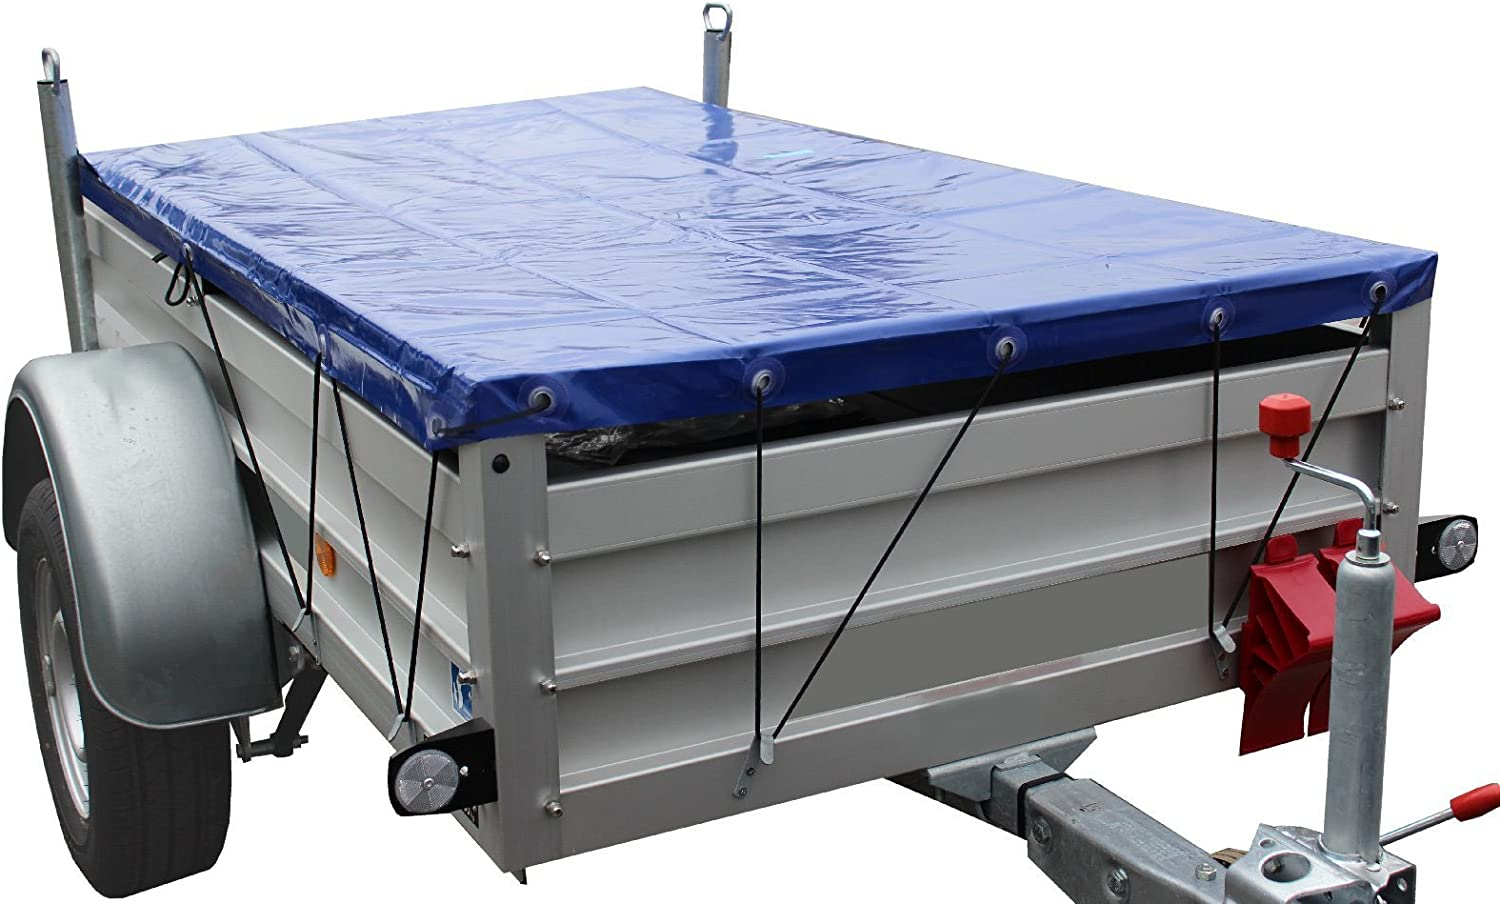 Trailer tarpaulin with elastic strap blue 2575 x 1345 x 50/ mm fabric cover